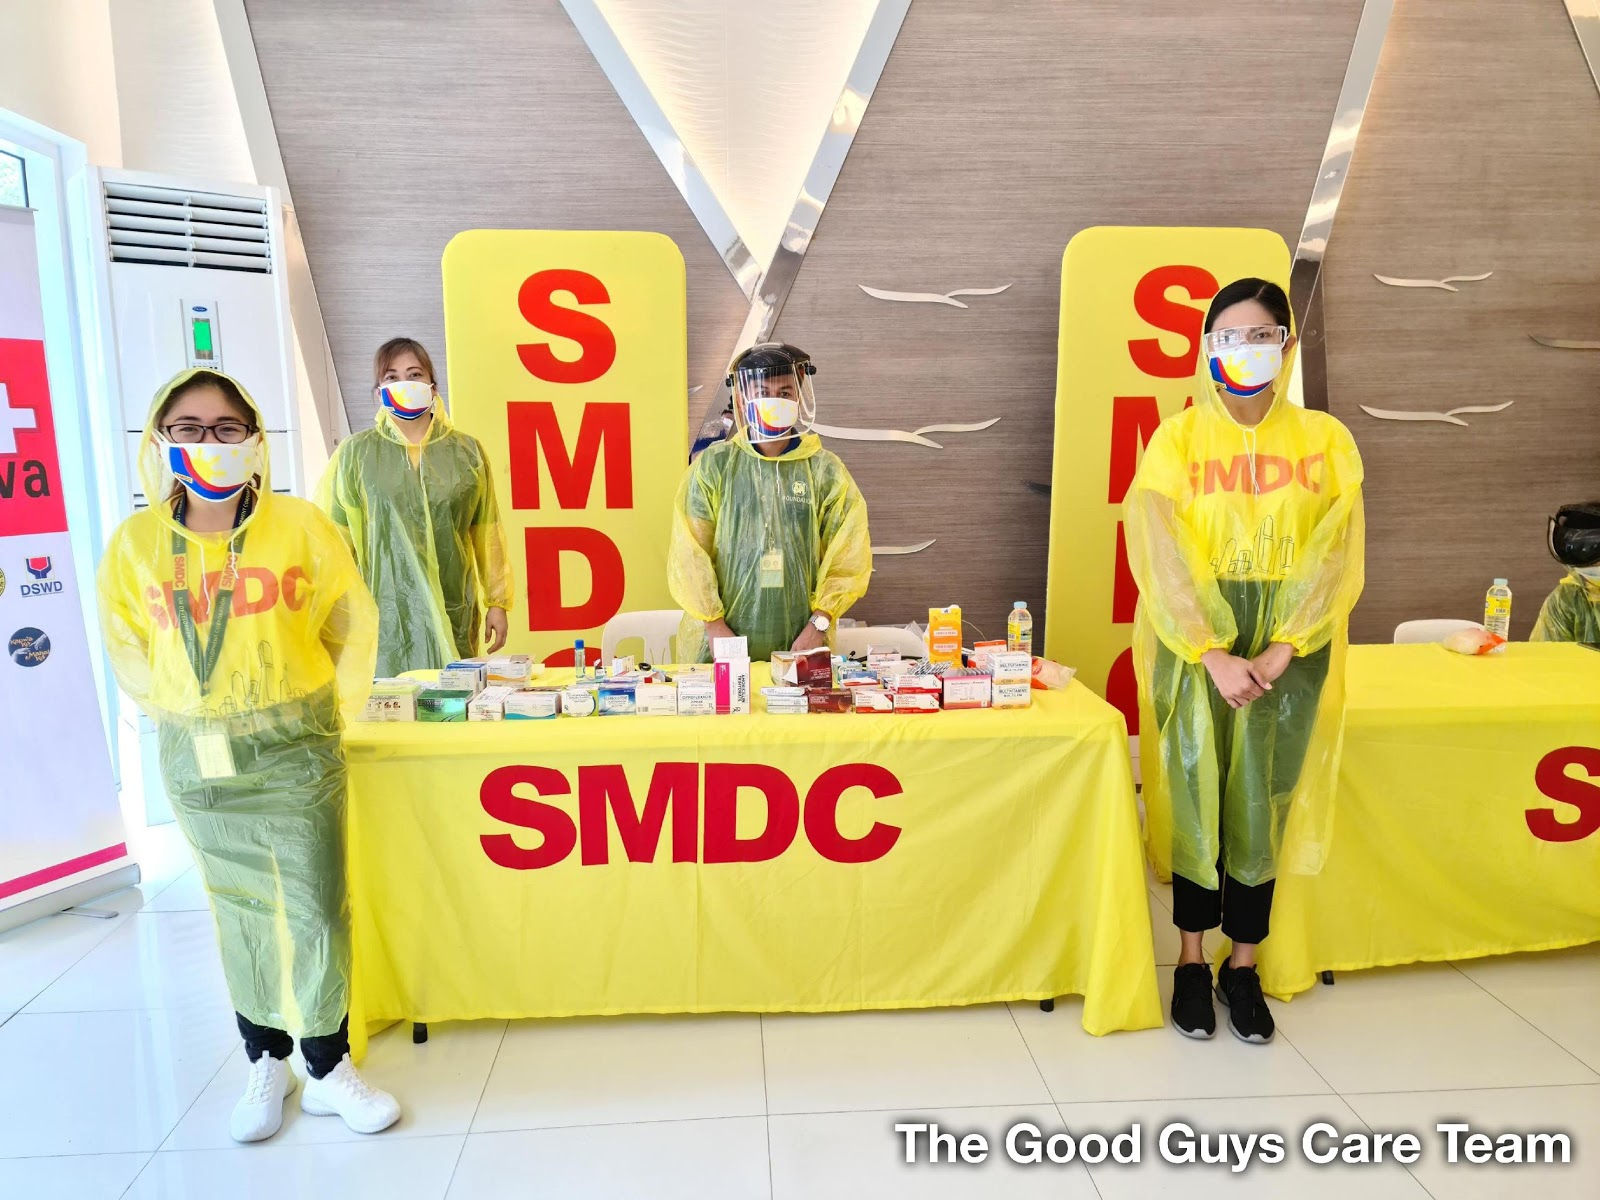 SMDC implements programs to help various sectors during the pandemic